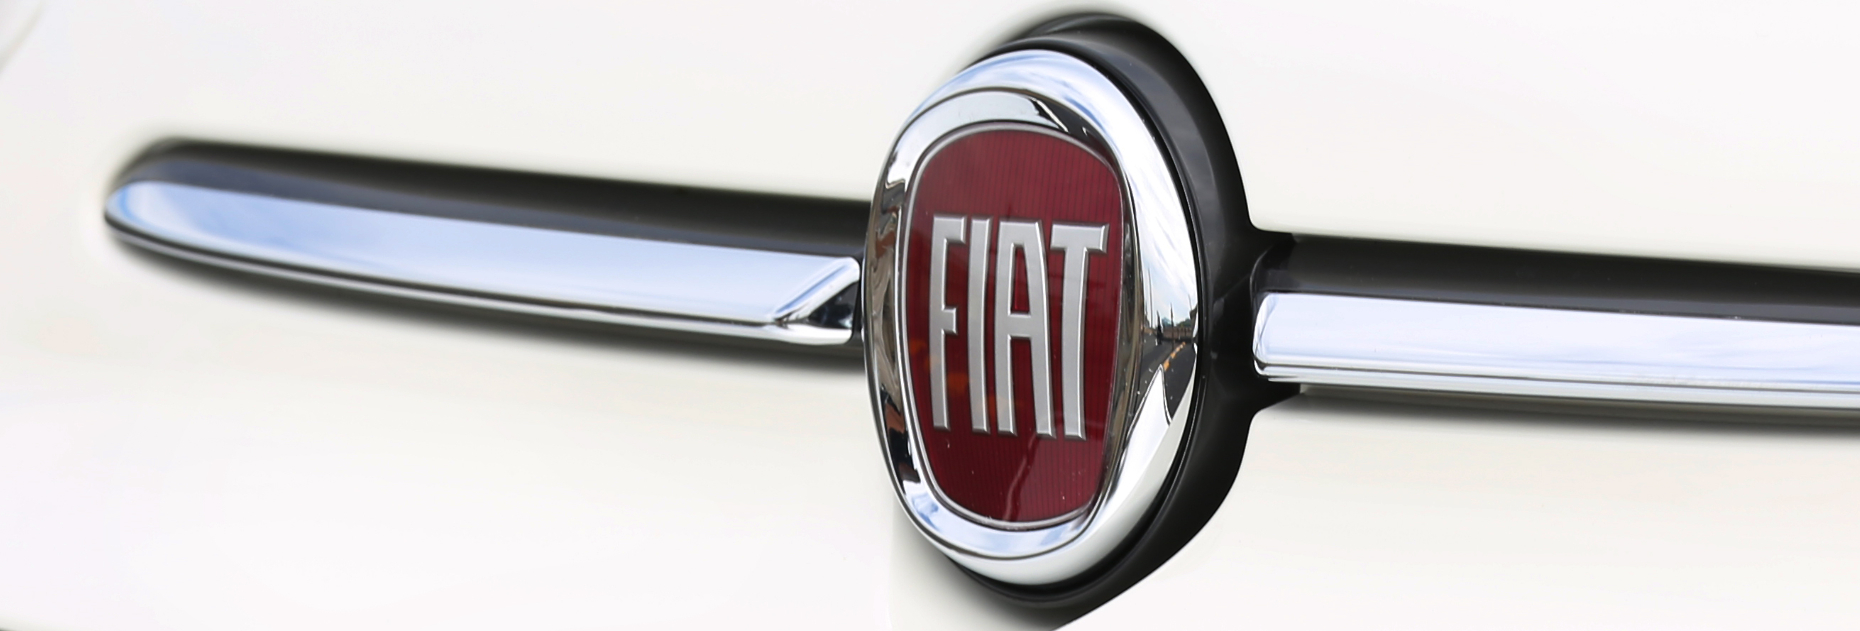 Fiat occasions AutoStrada Roosendaal